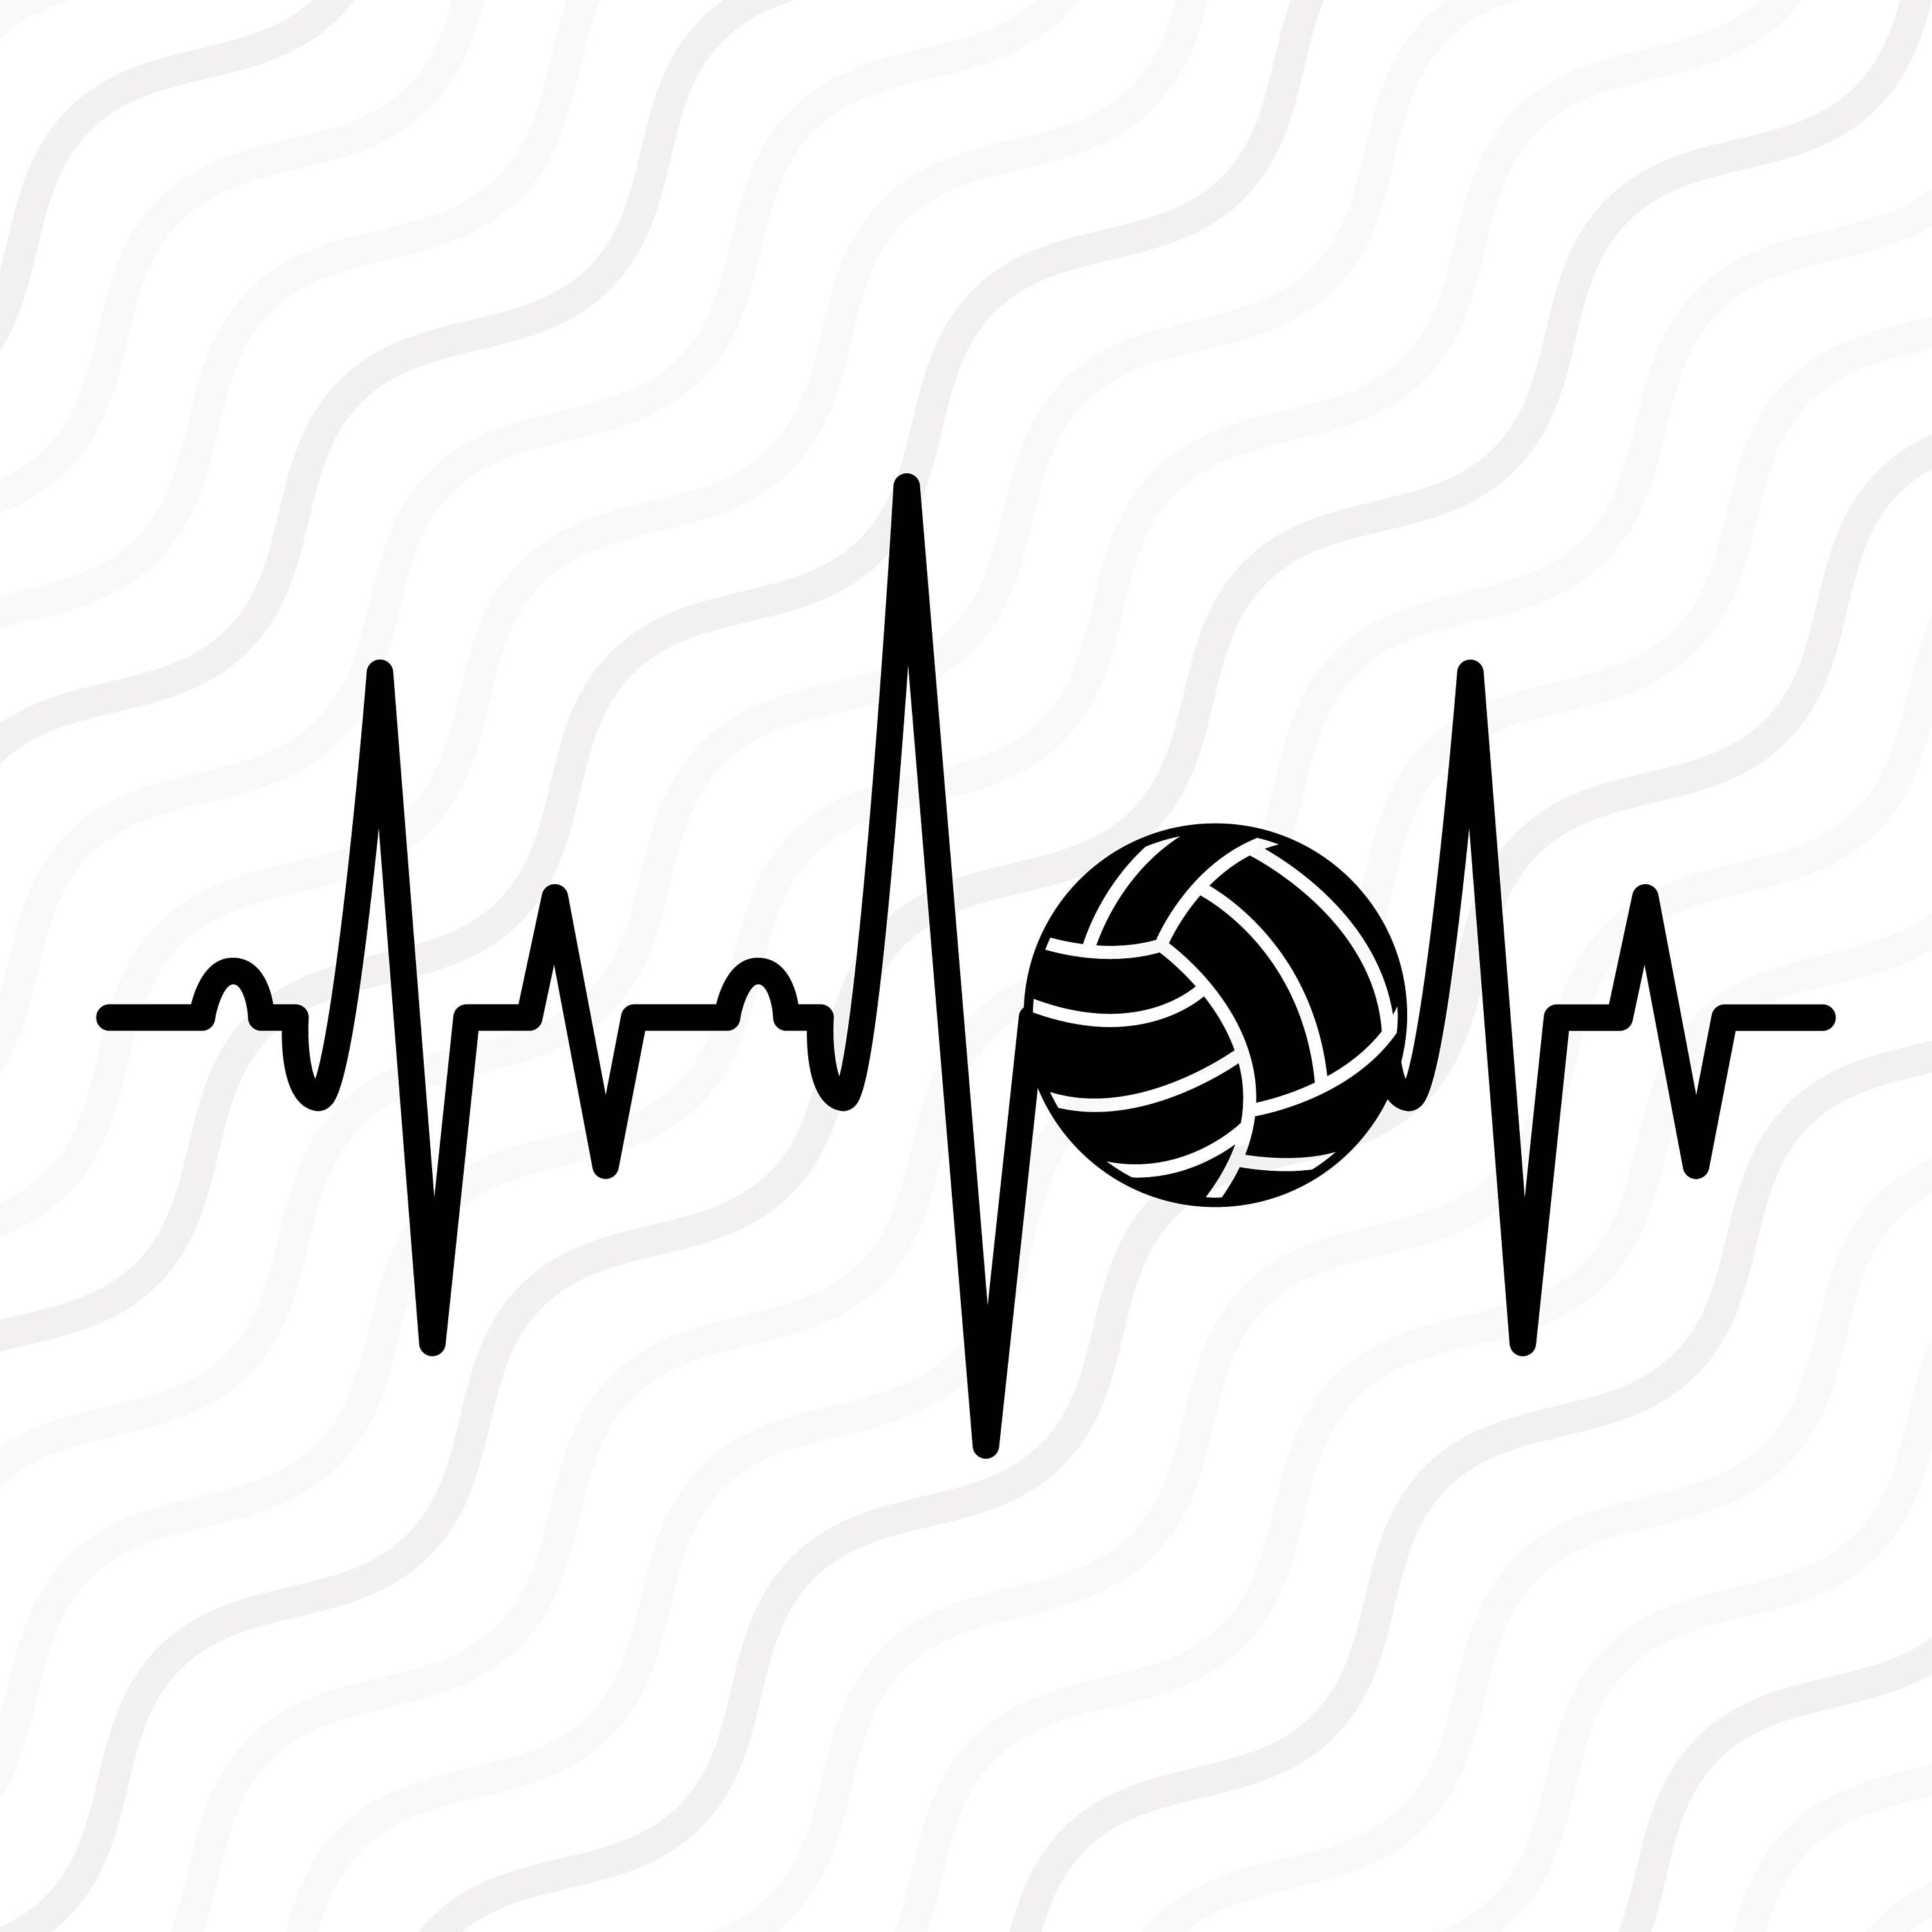 A Personal Favourite From My Etsy Shop Https Www Etsy Com Sg En Listing 544190632 Volley Ball Heartbeat Svg Vo Volleyball Wallpaper Volley Volleyball Designs